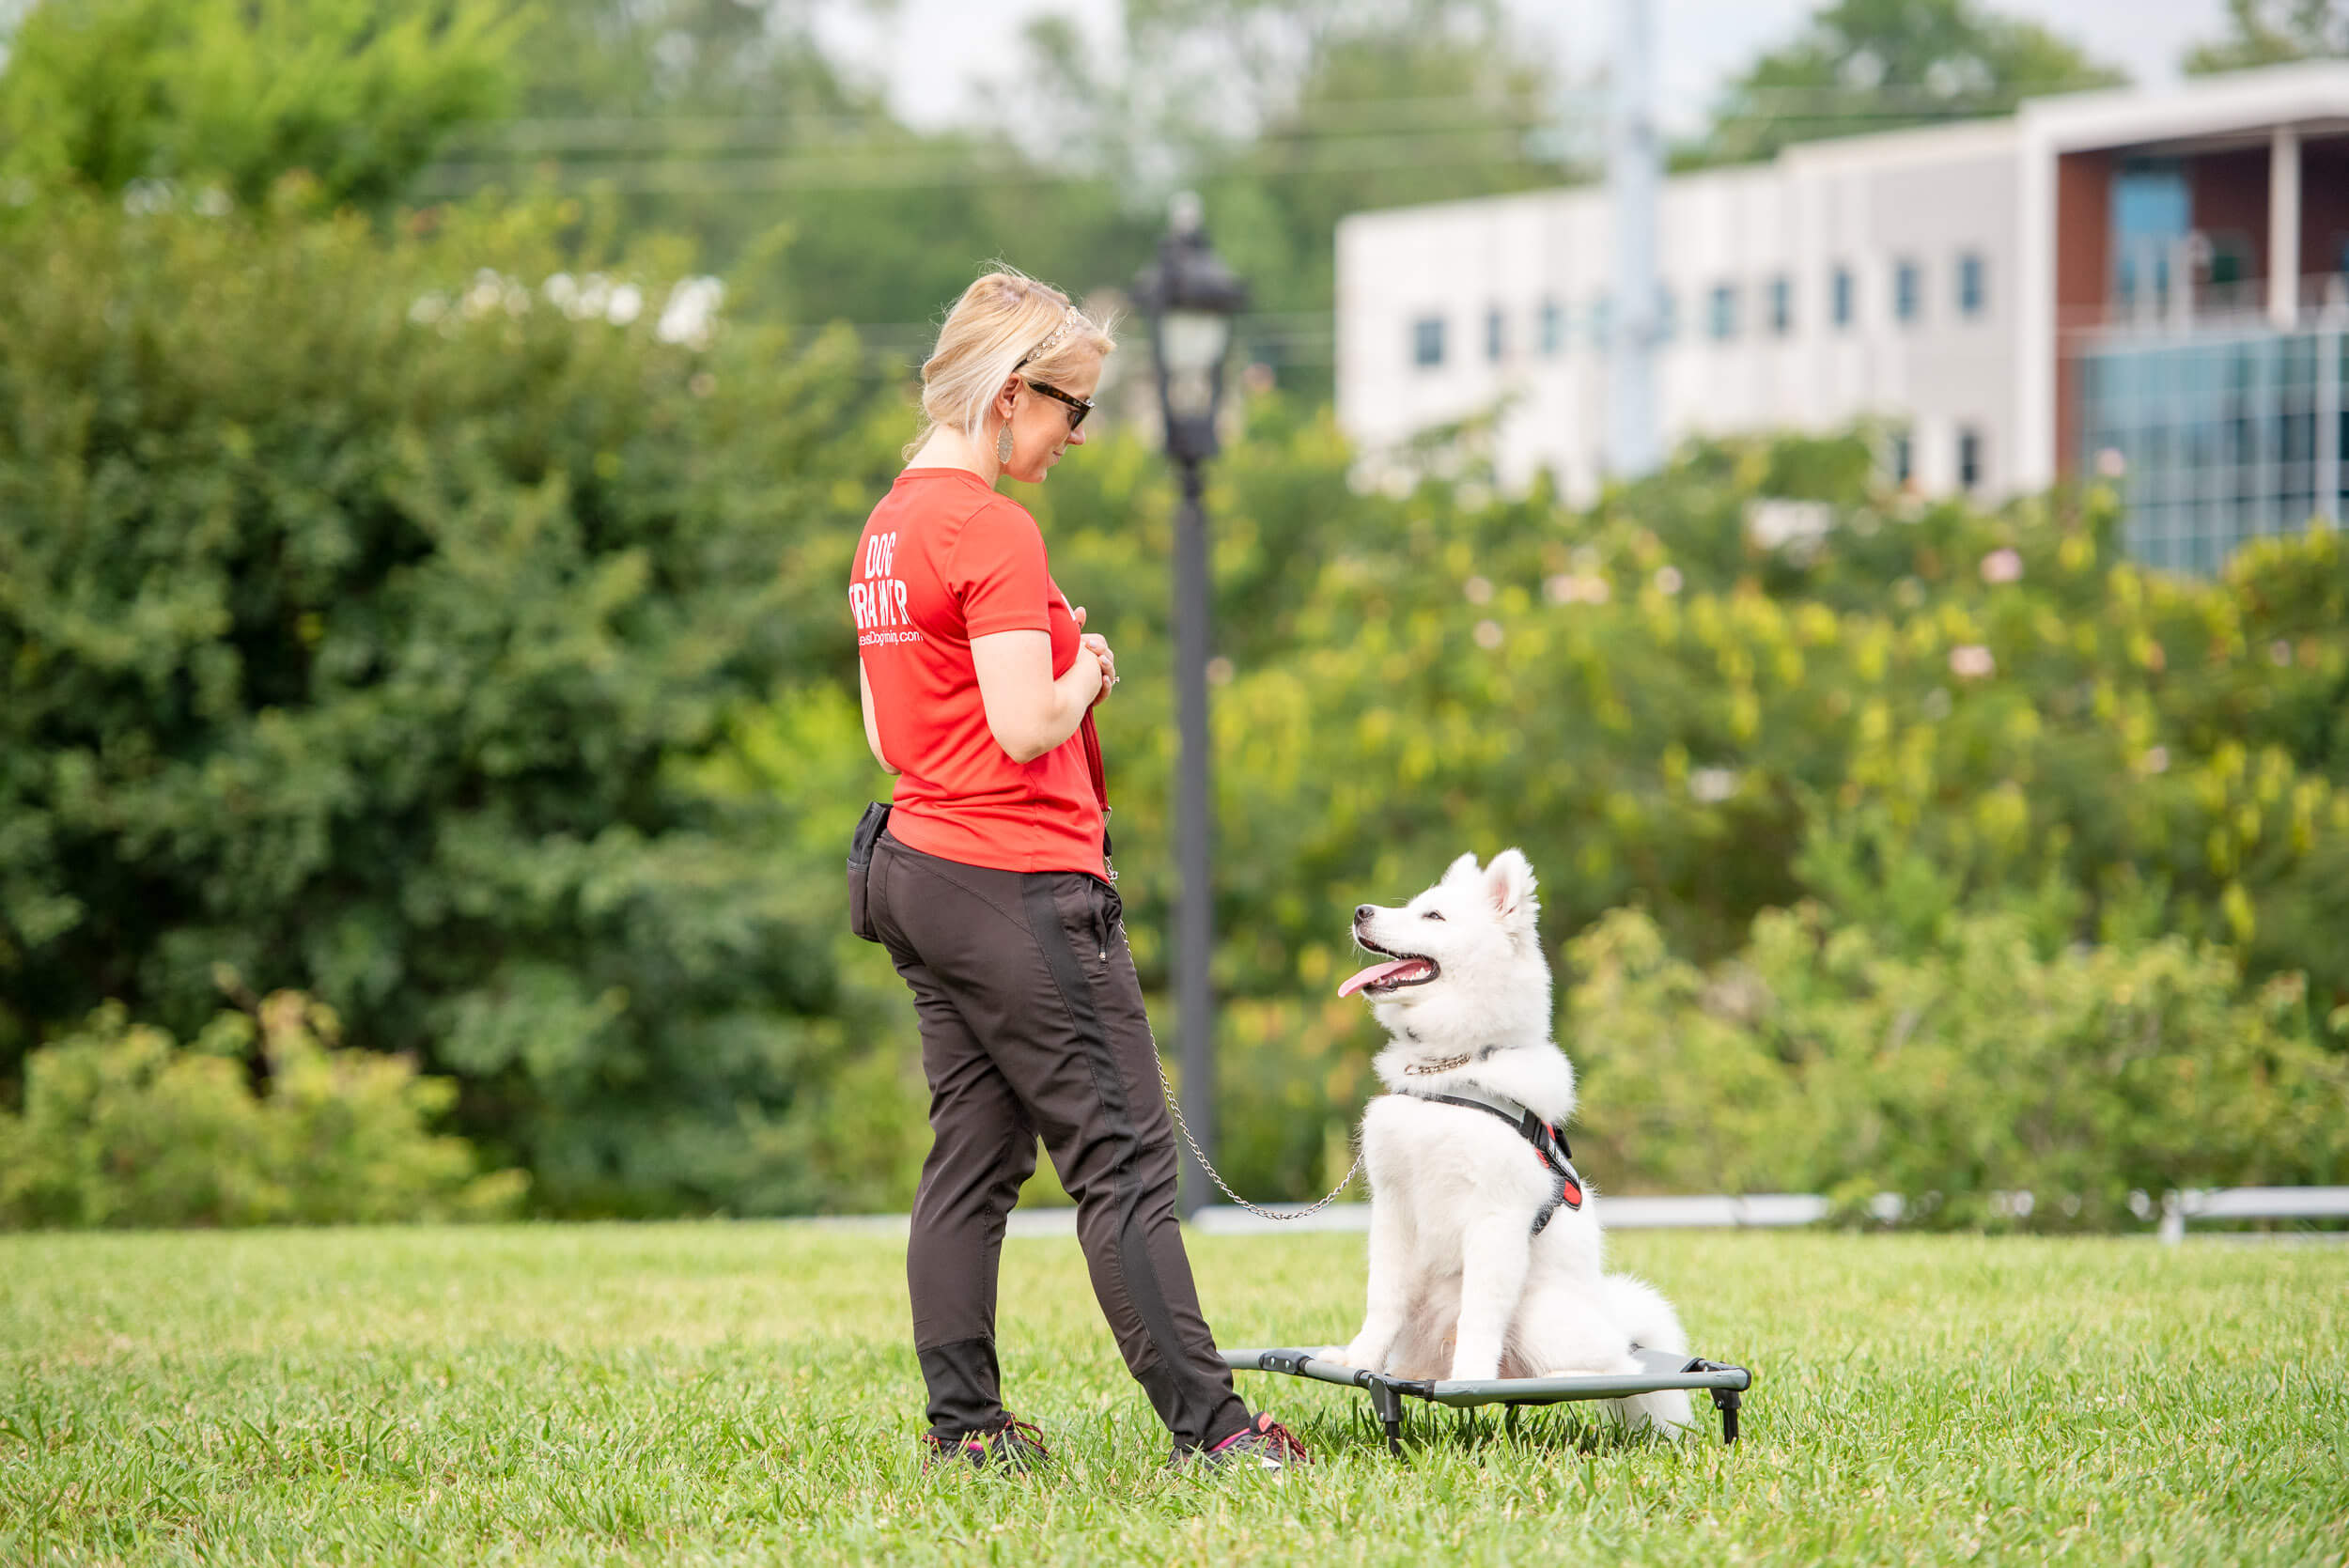 White dog participating in an adult dog training class outside in Charlotte, NC